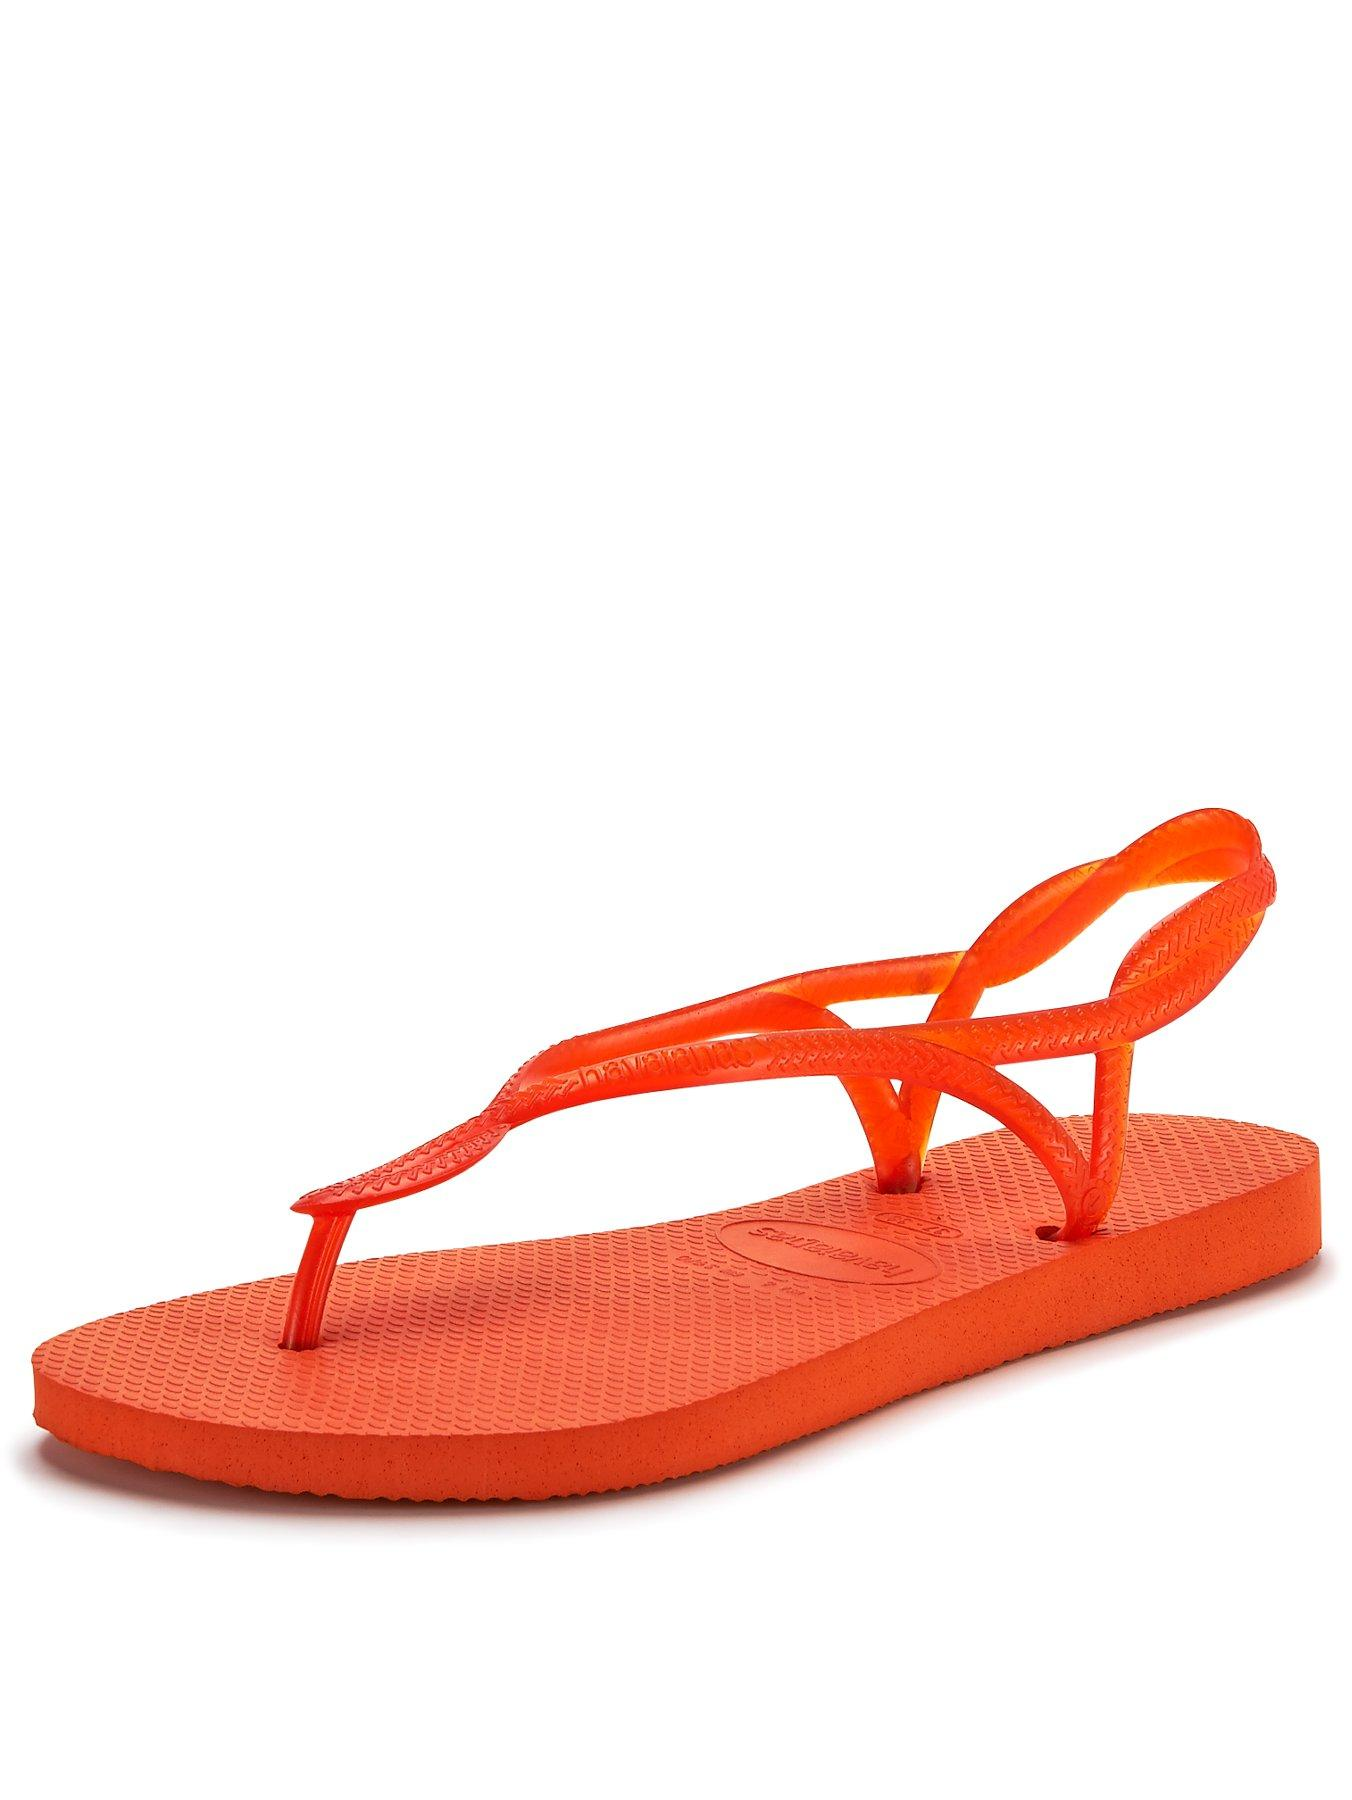 Havaianas Bright Ankle Strap Orange Flip Flop